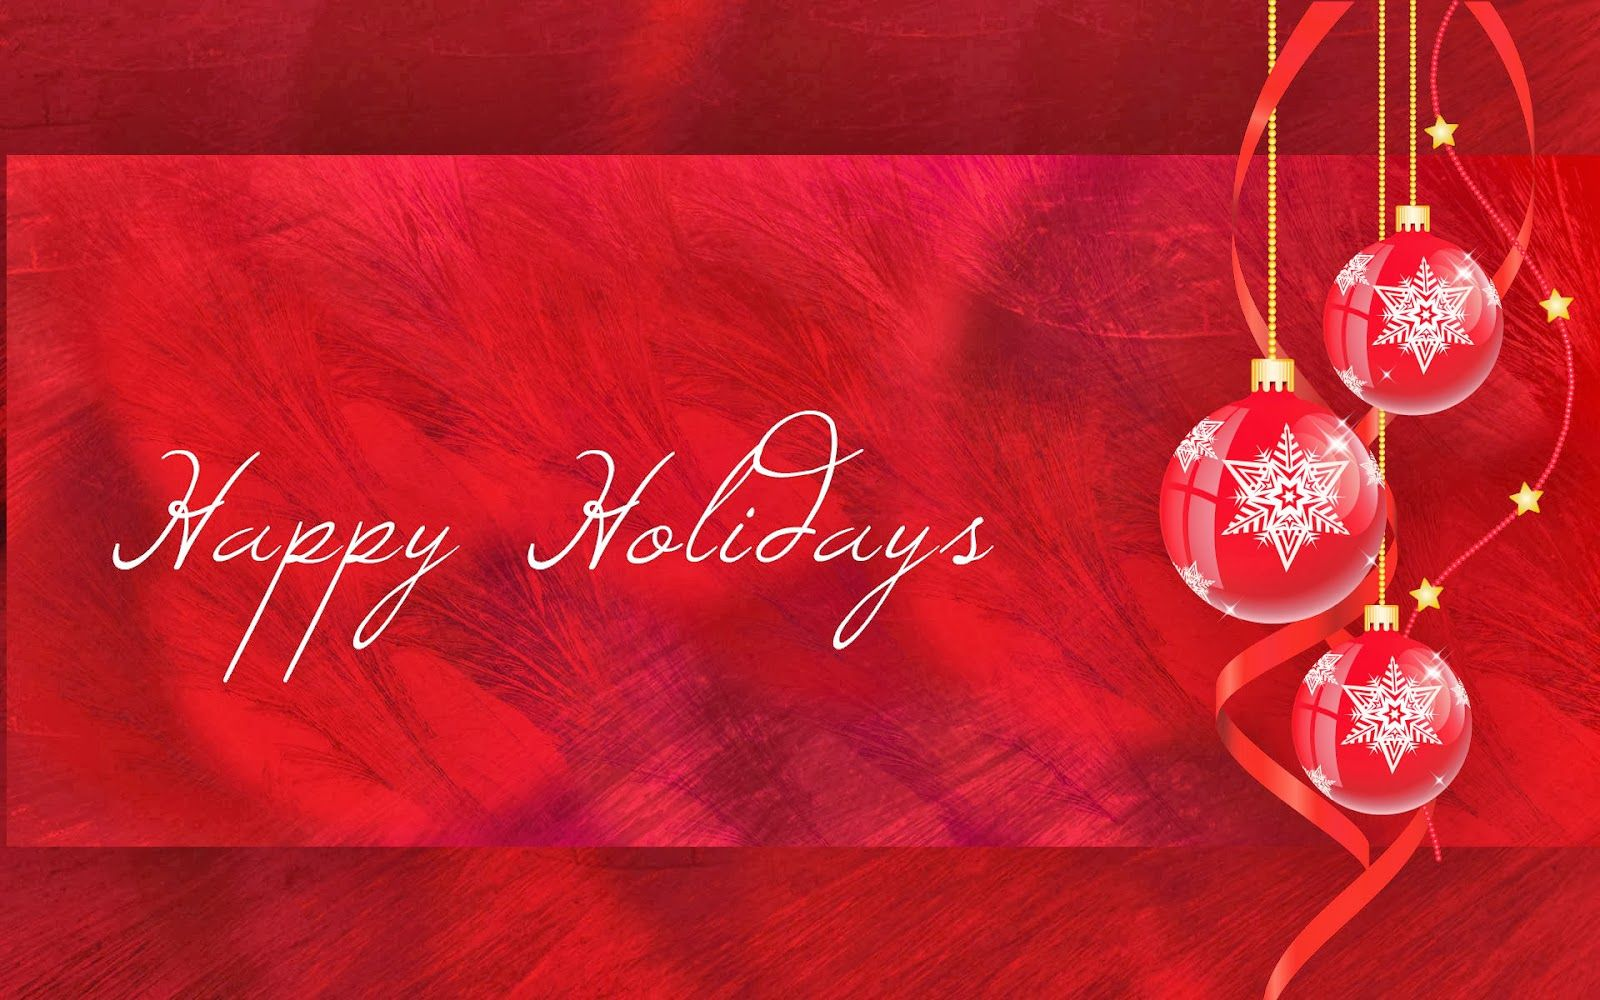 mind blowing happy holidays wallpapers collection | mindblowing